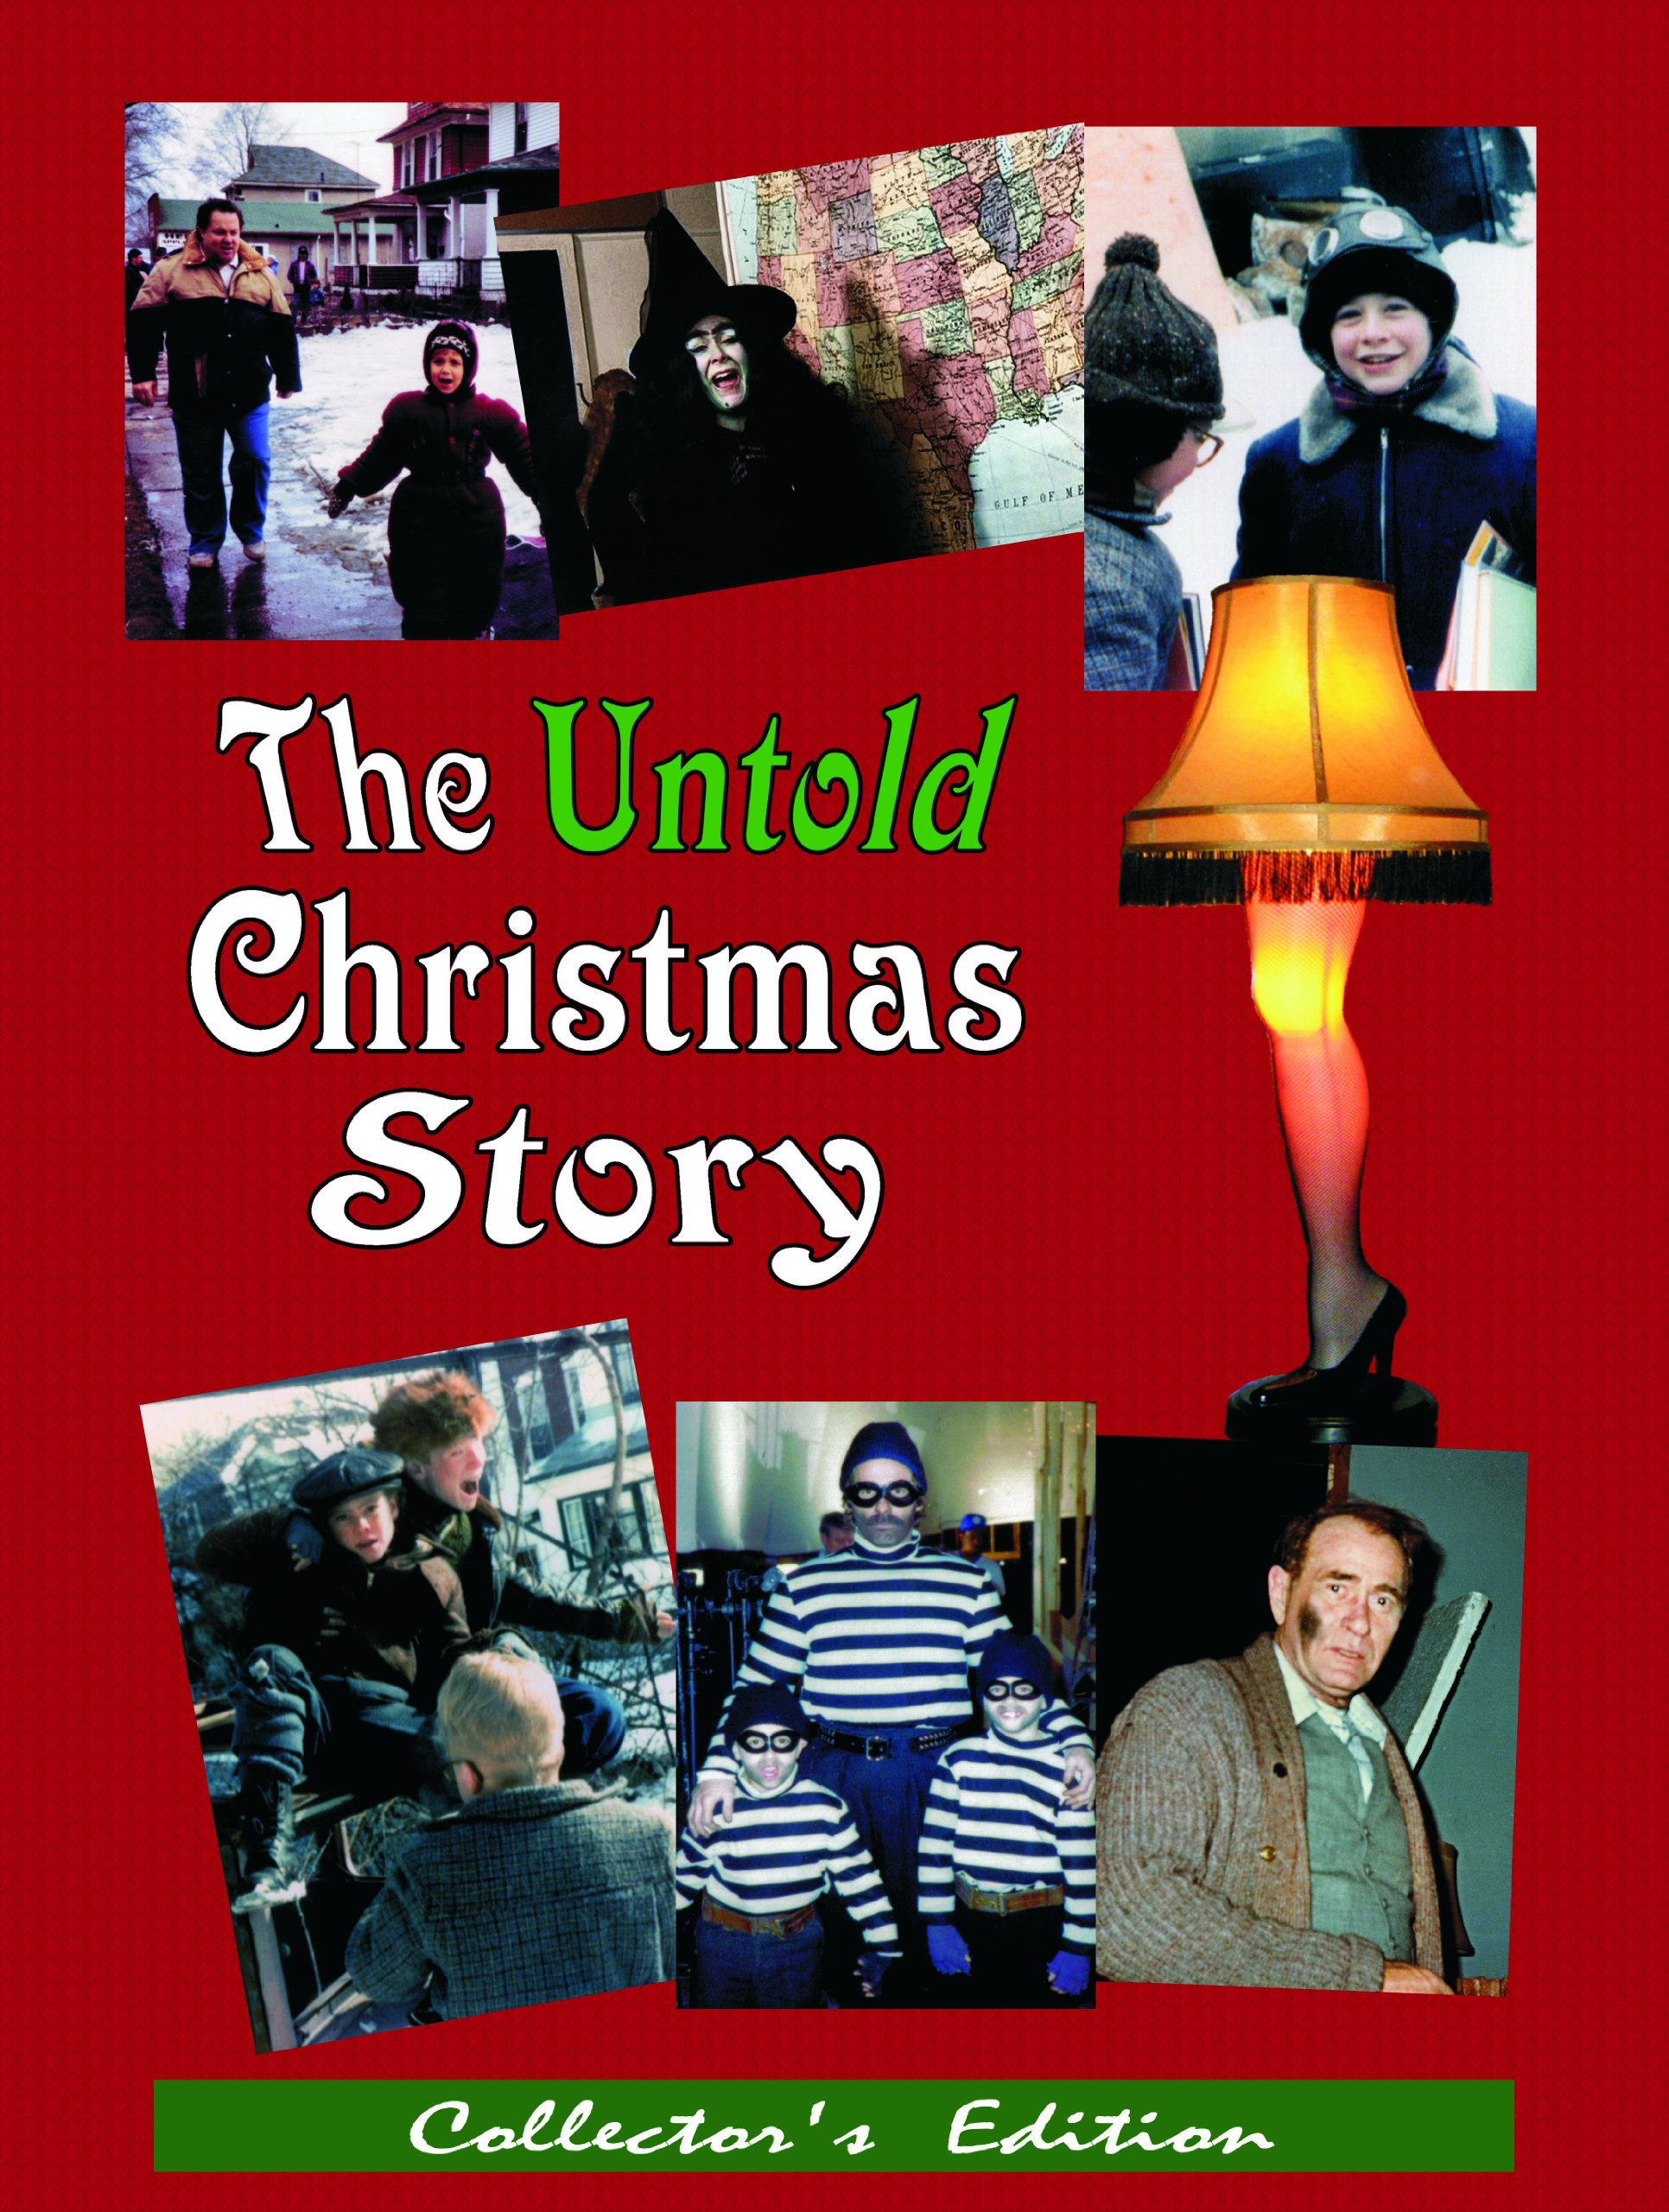 The Untold Christmas Story by Monarch